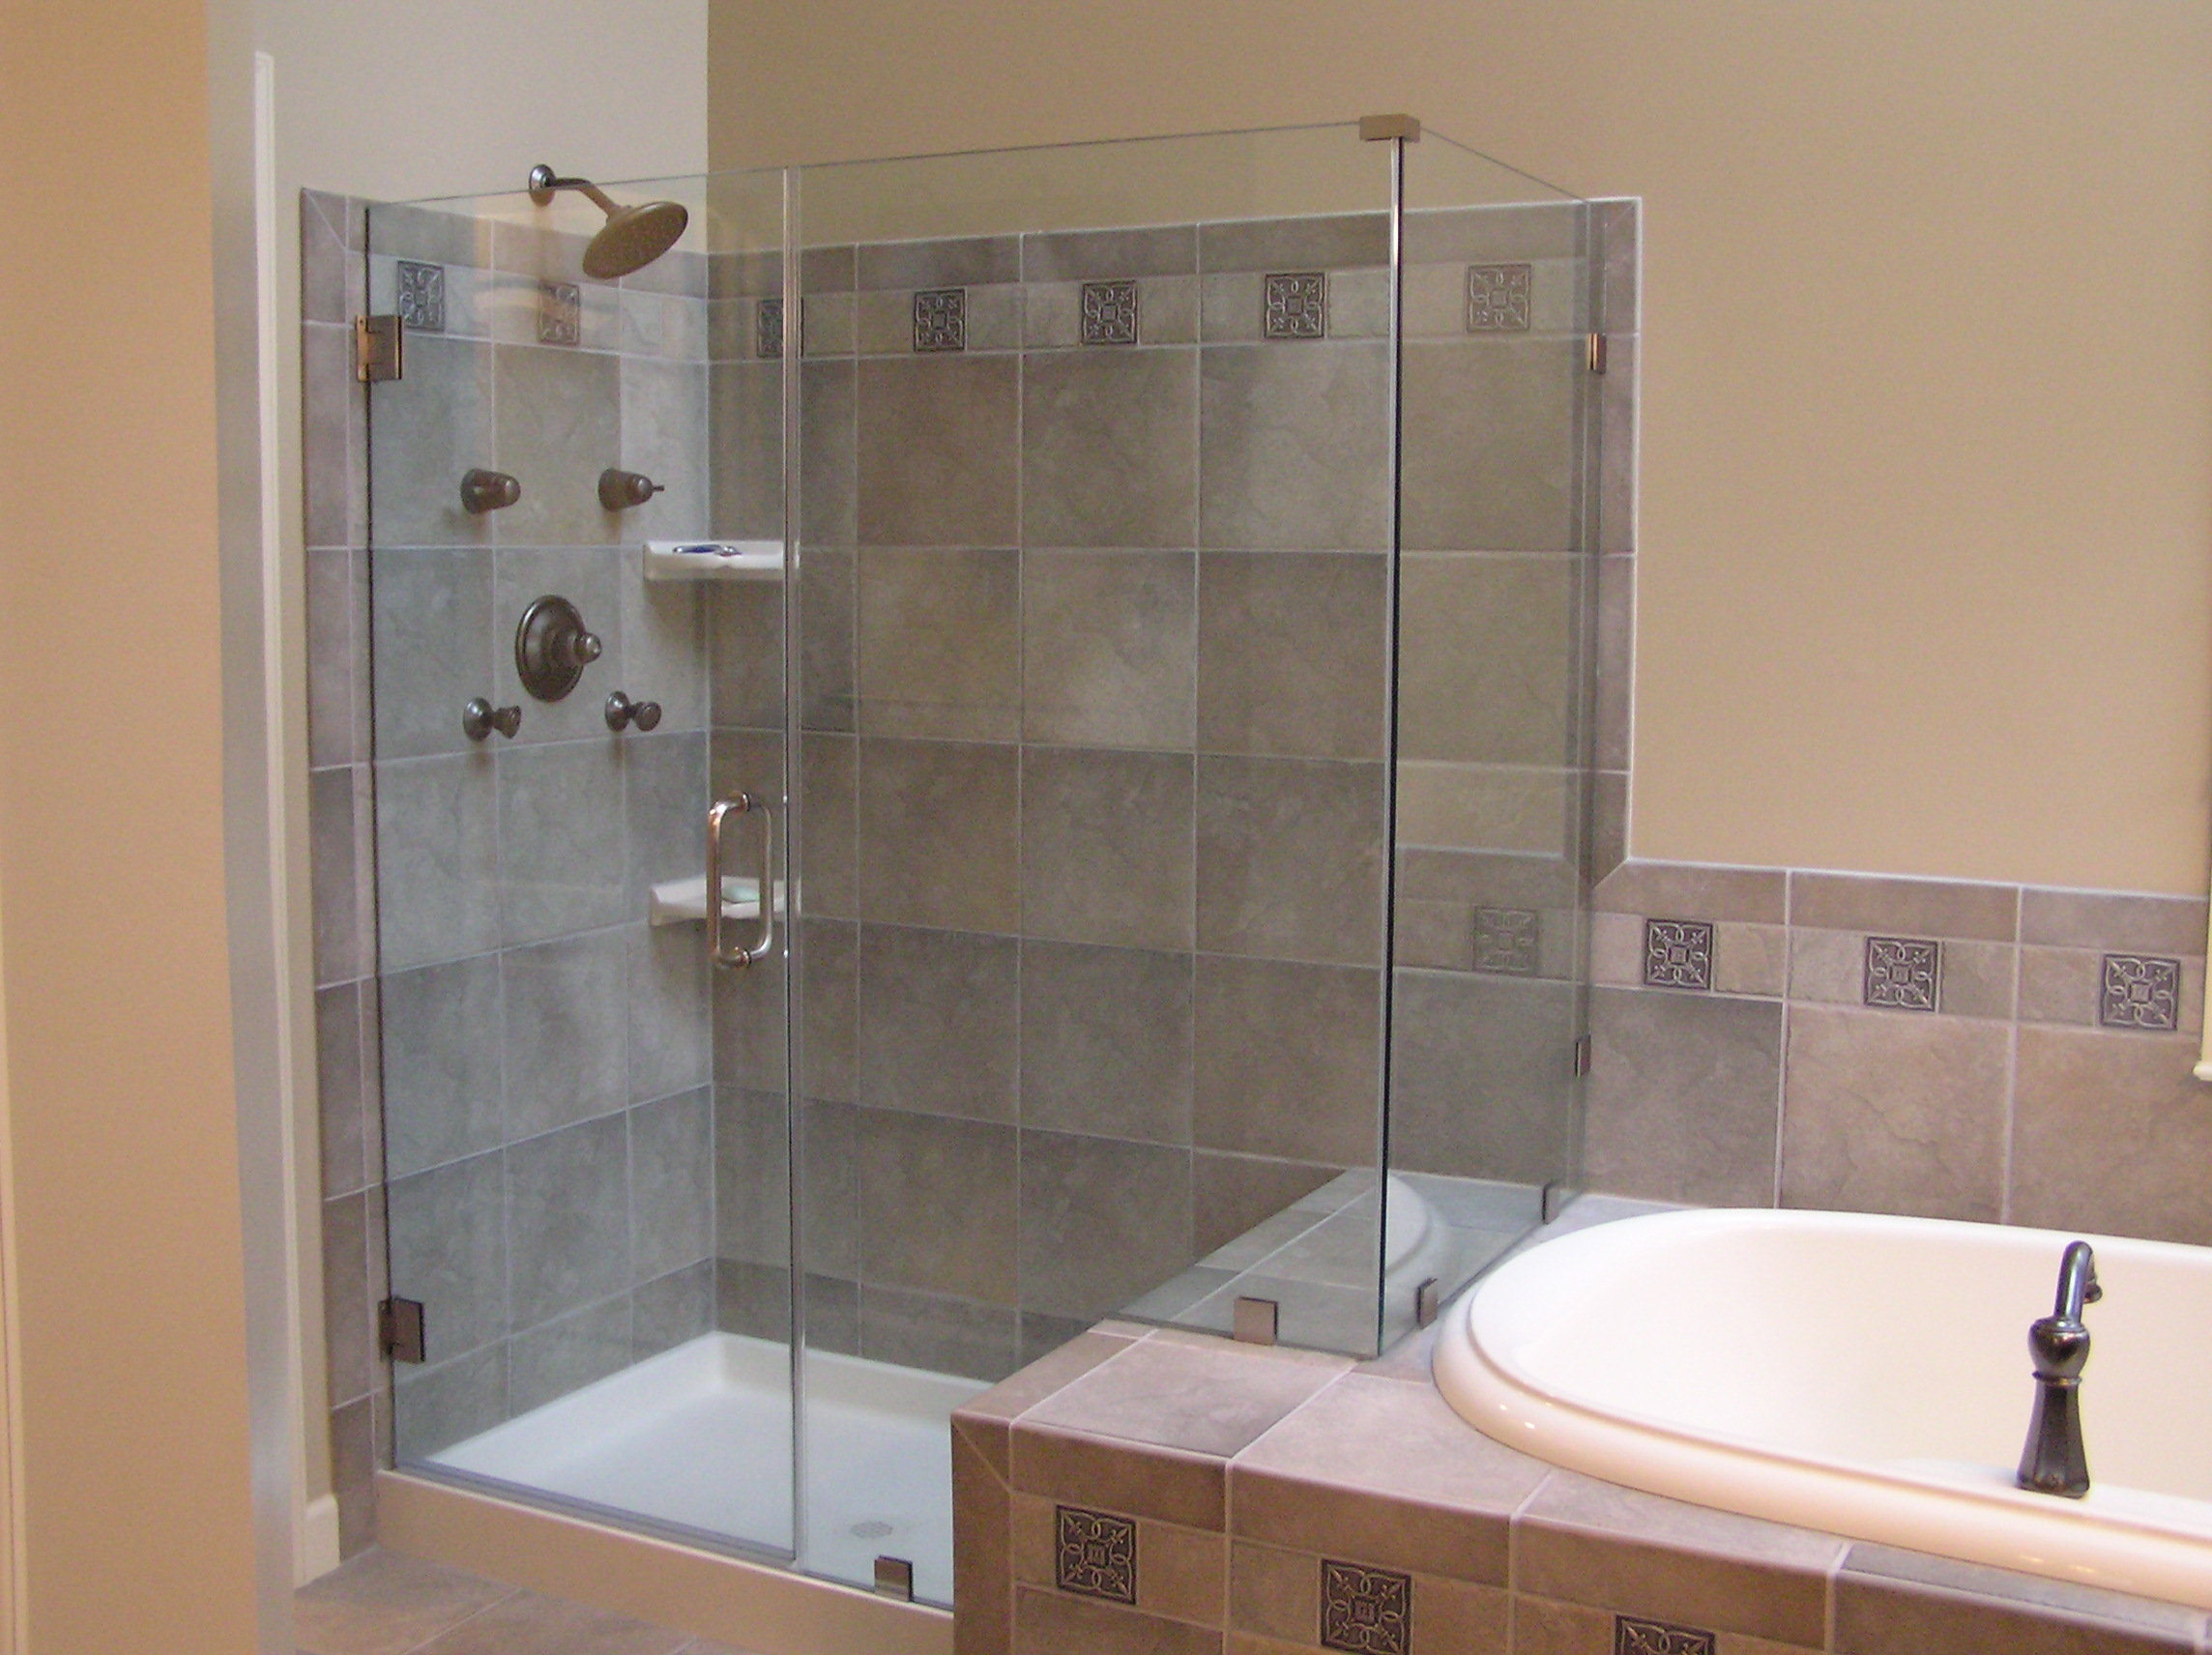 Bathroom Remodel Ideas And Cost how much is an average bathroom remodel. bathroom average bathroom